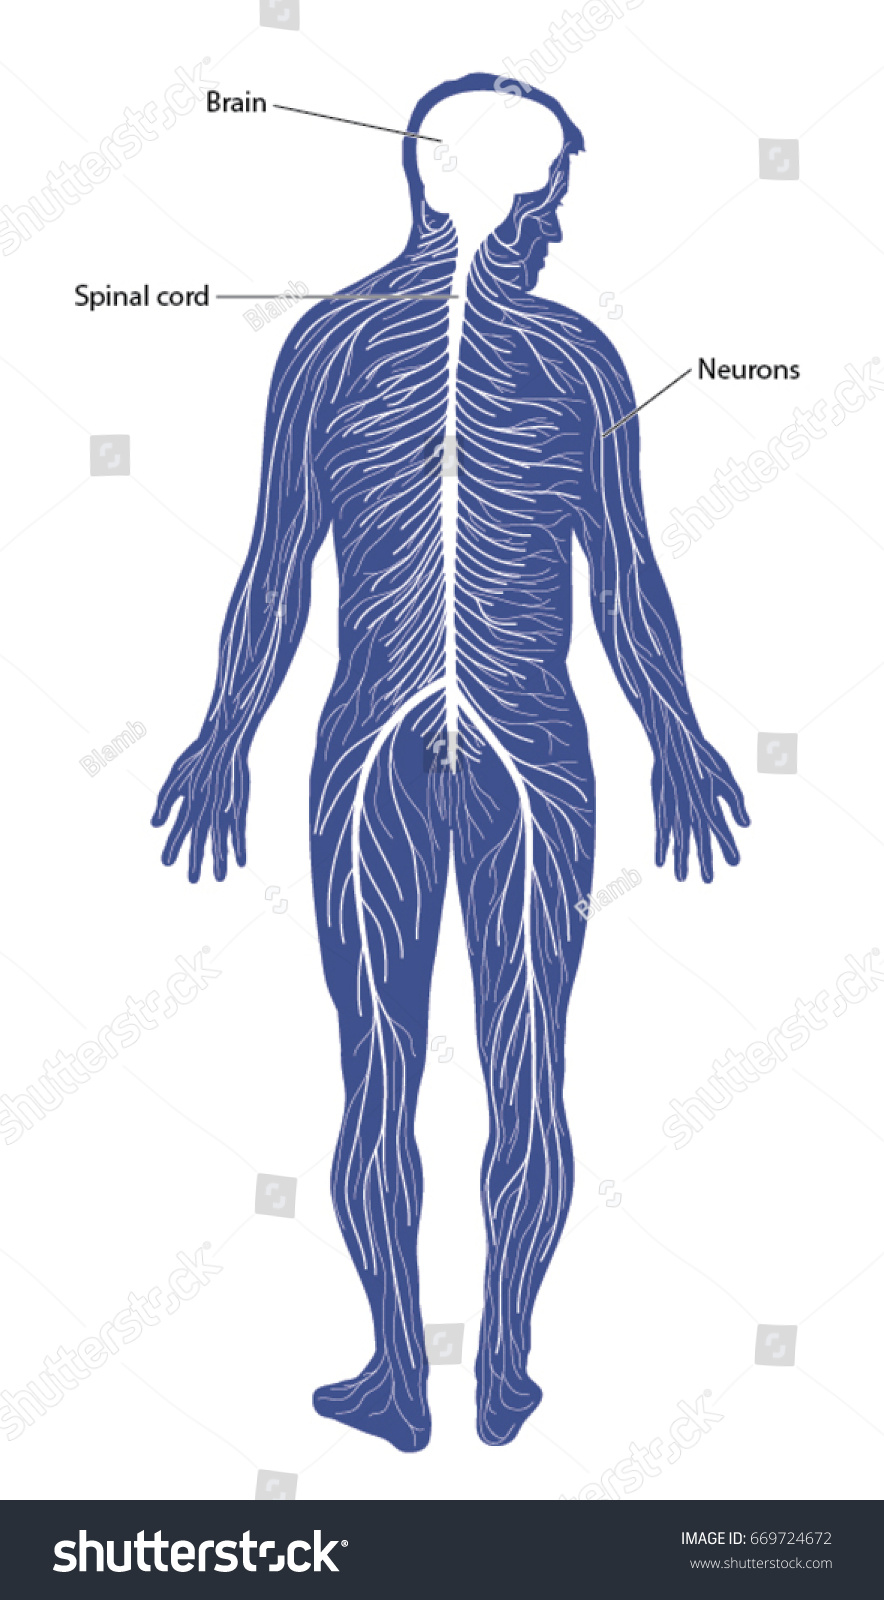 medium resolution of schematic diagram of the nervous system comprising of the brain spinal cord and peripheral